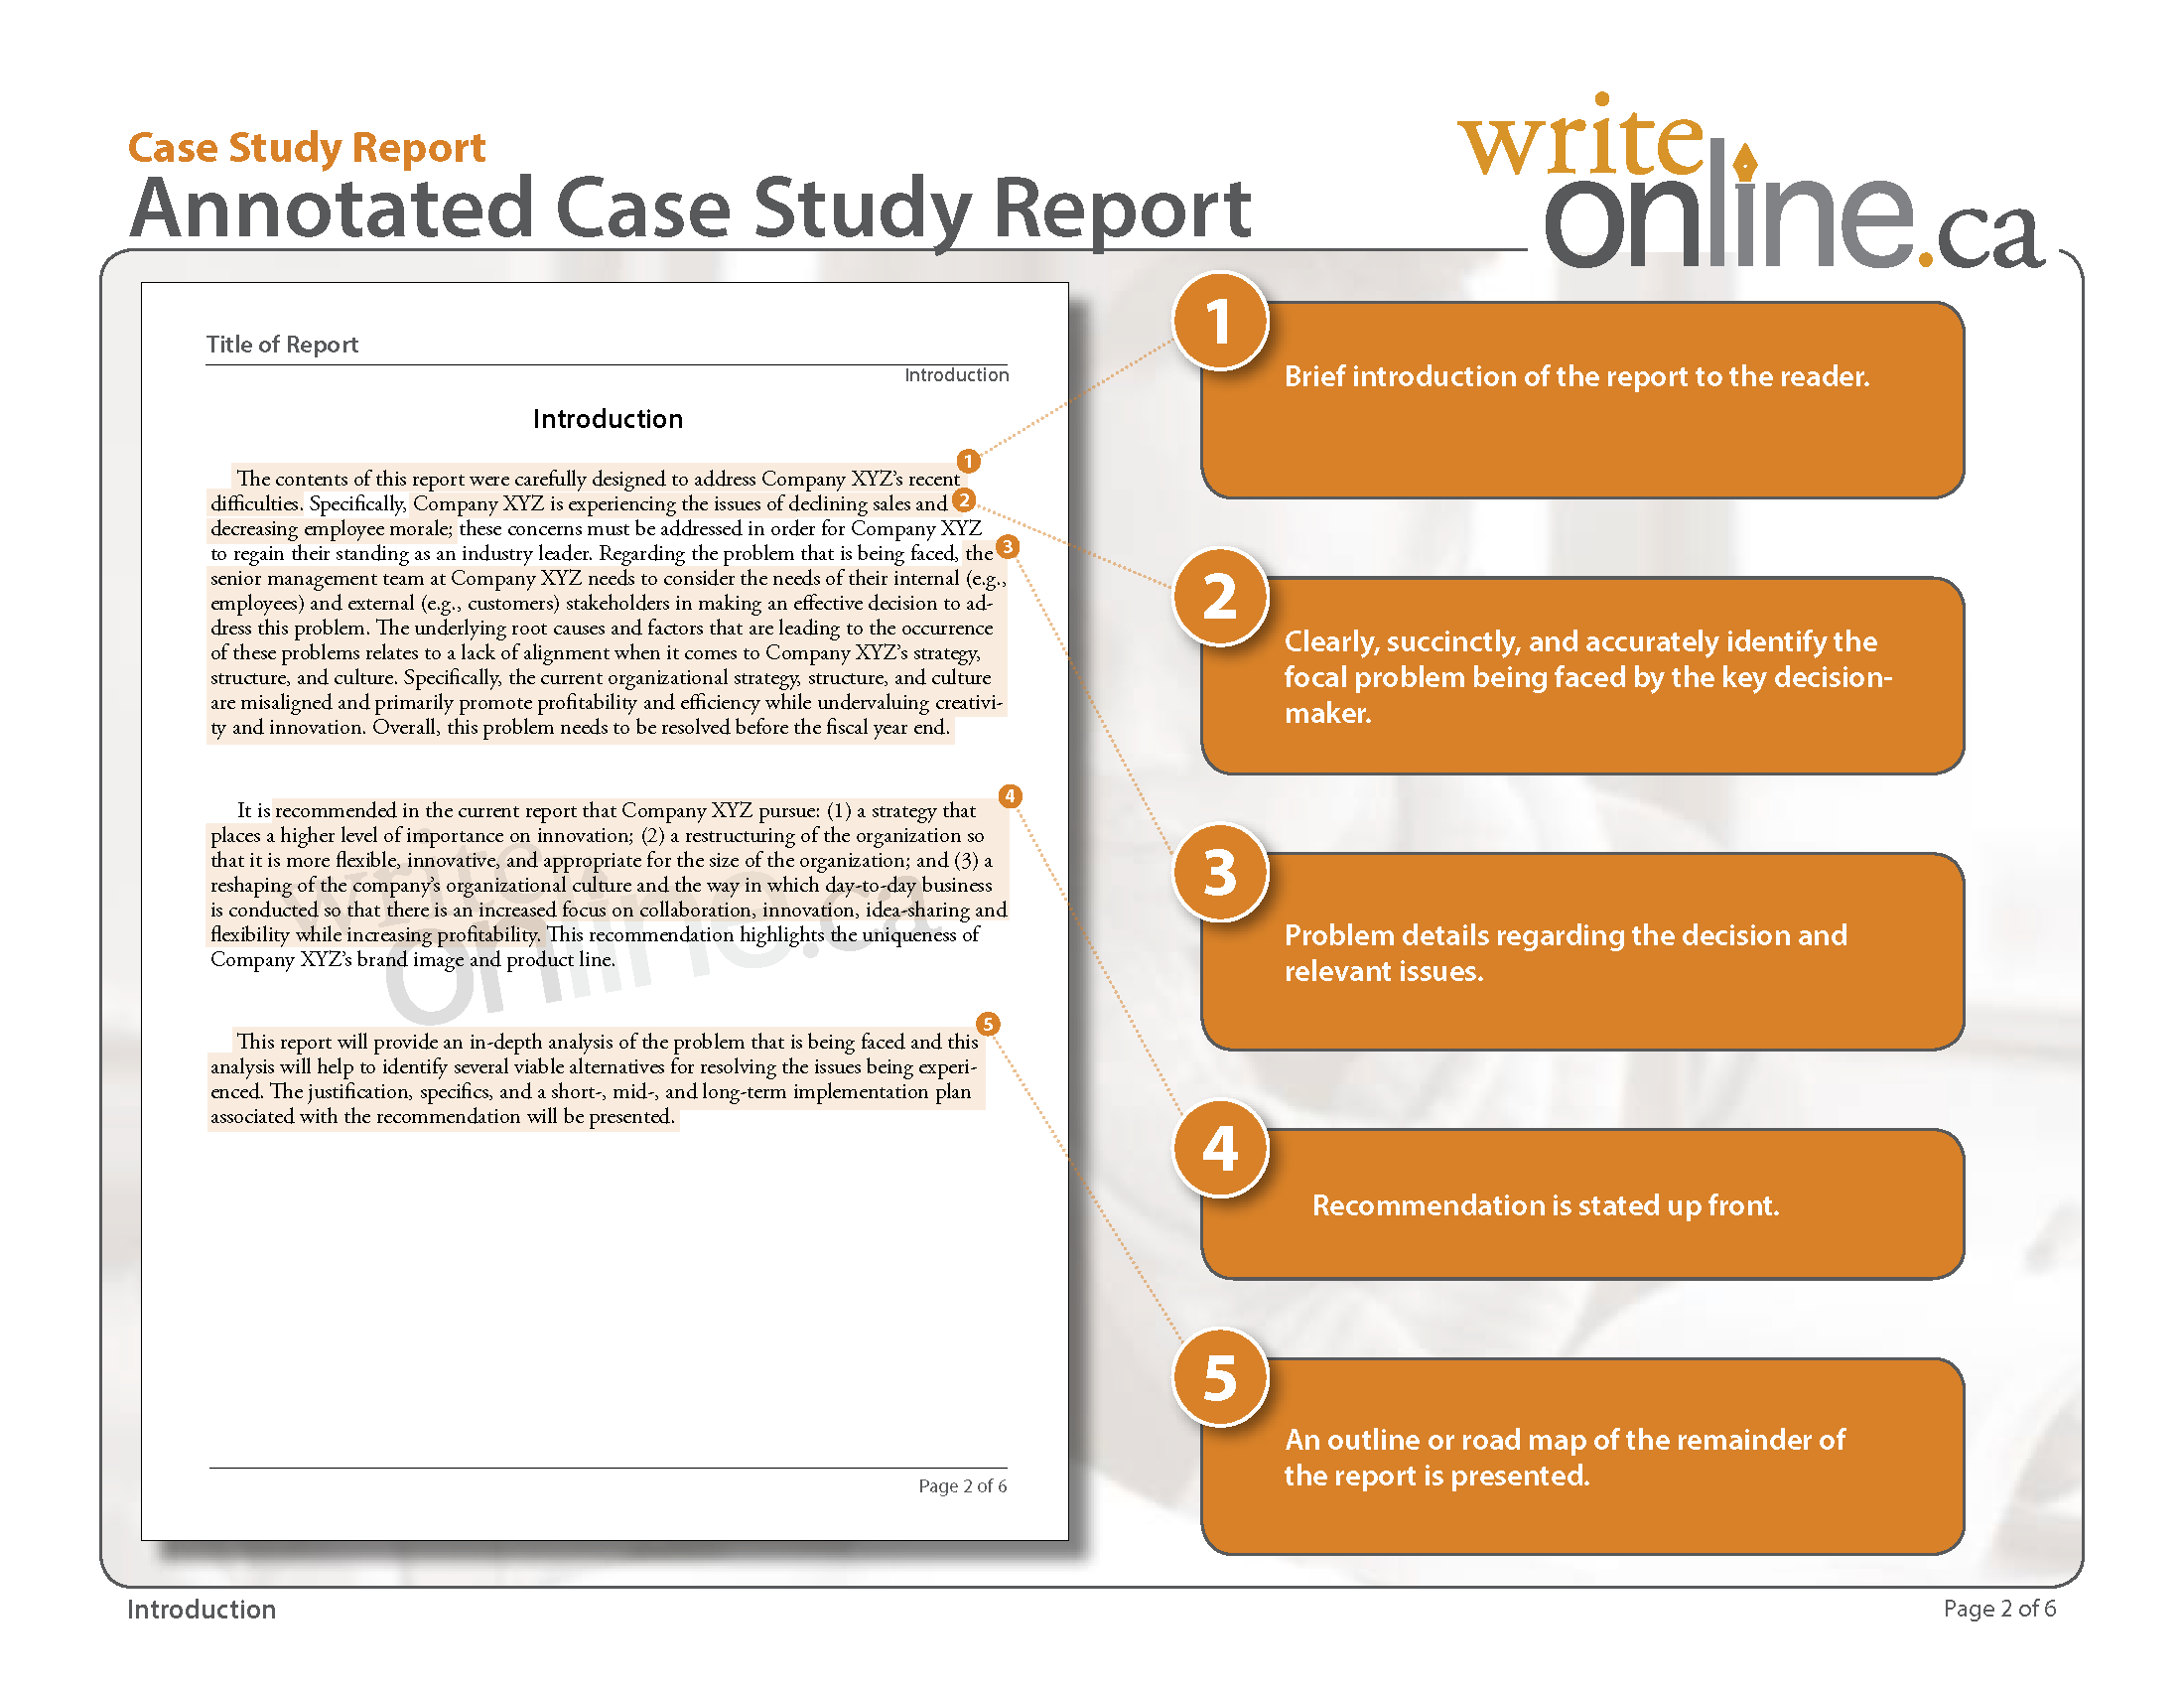 008 Casestudy Annotatedfull Page 2 Parts Of Research Paper Wonderful A Introduction Full